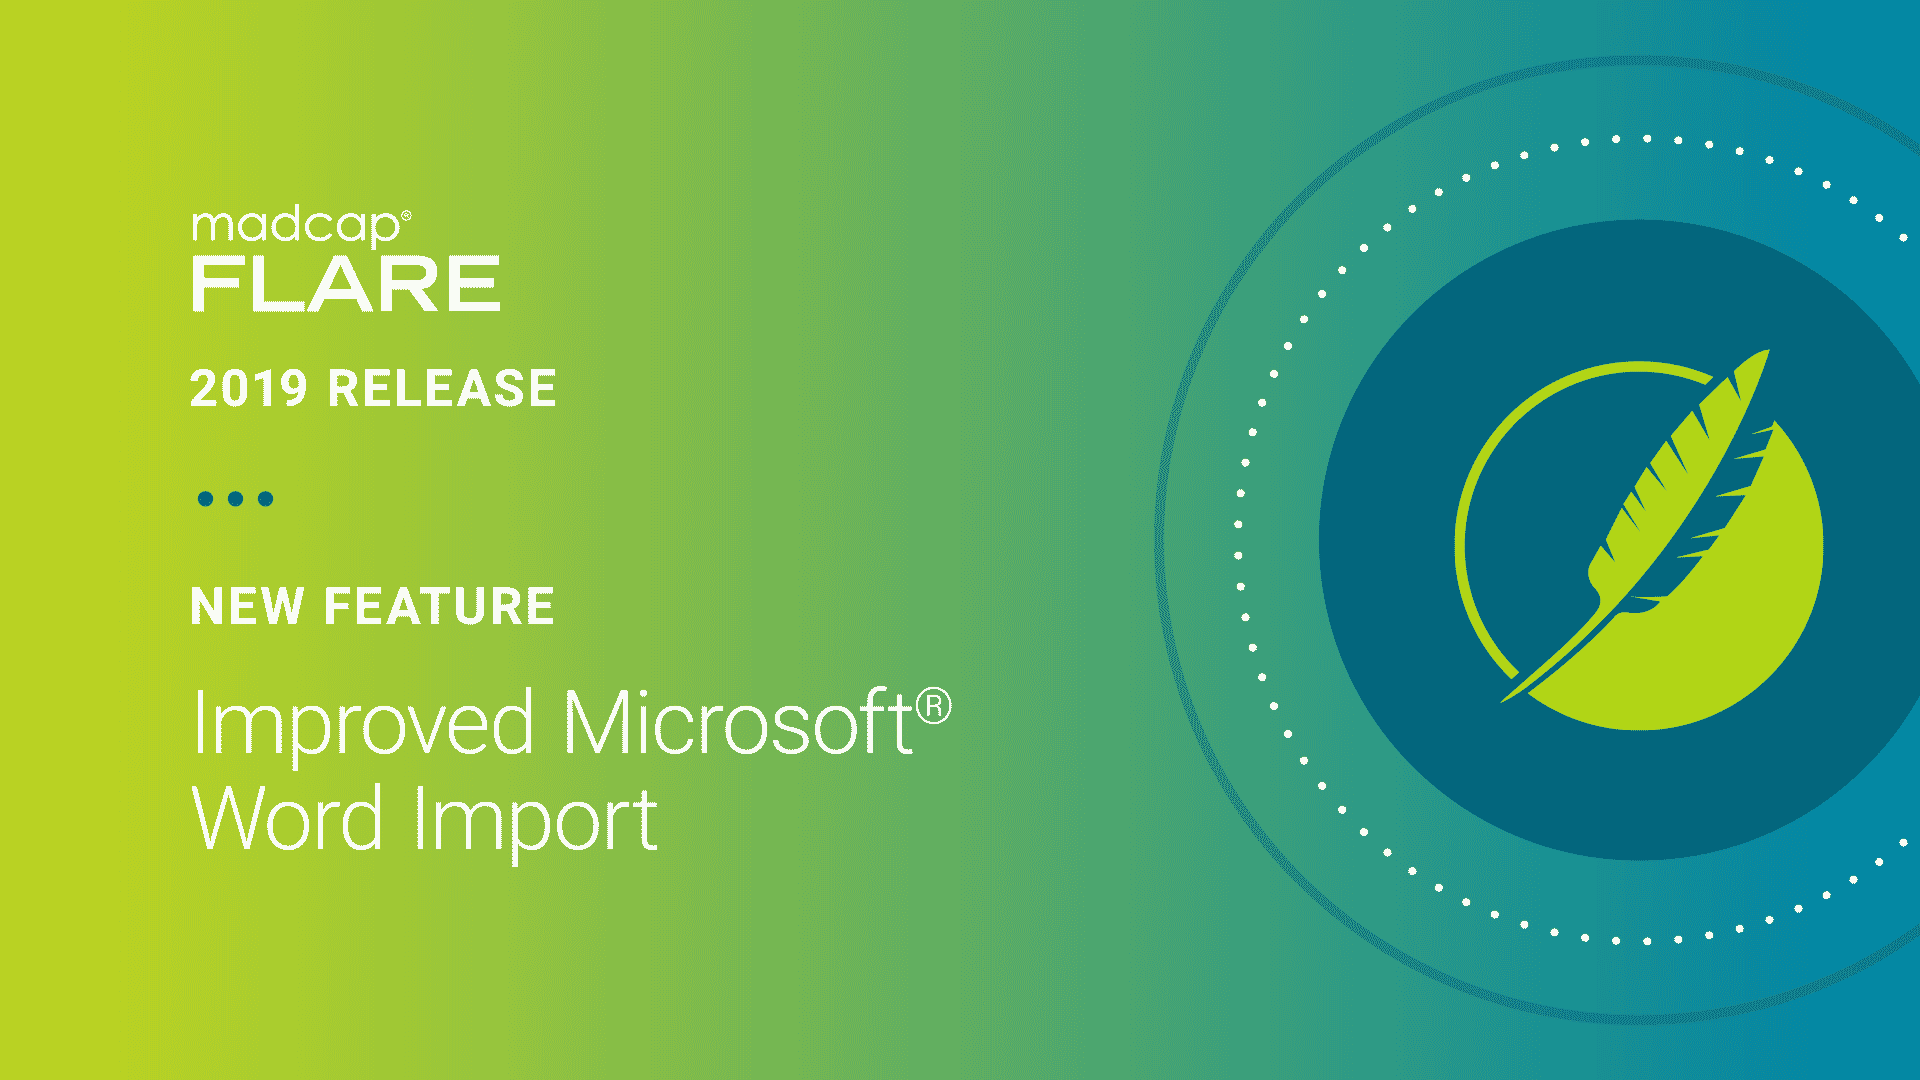 MadCap Flare 2019 r2 - New Feature: Improved Microsoft  Word Import